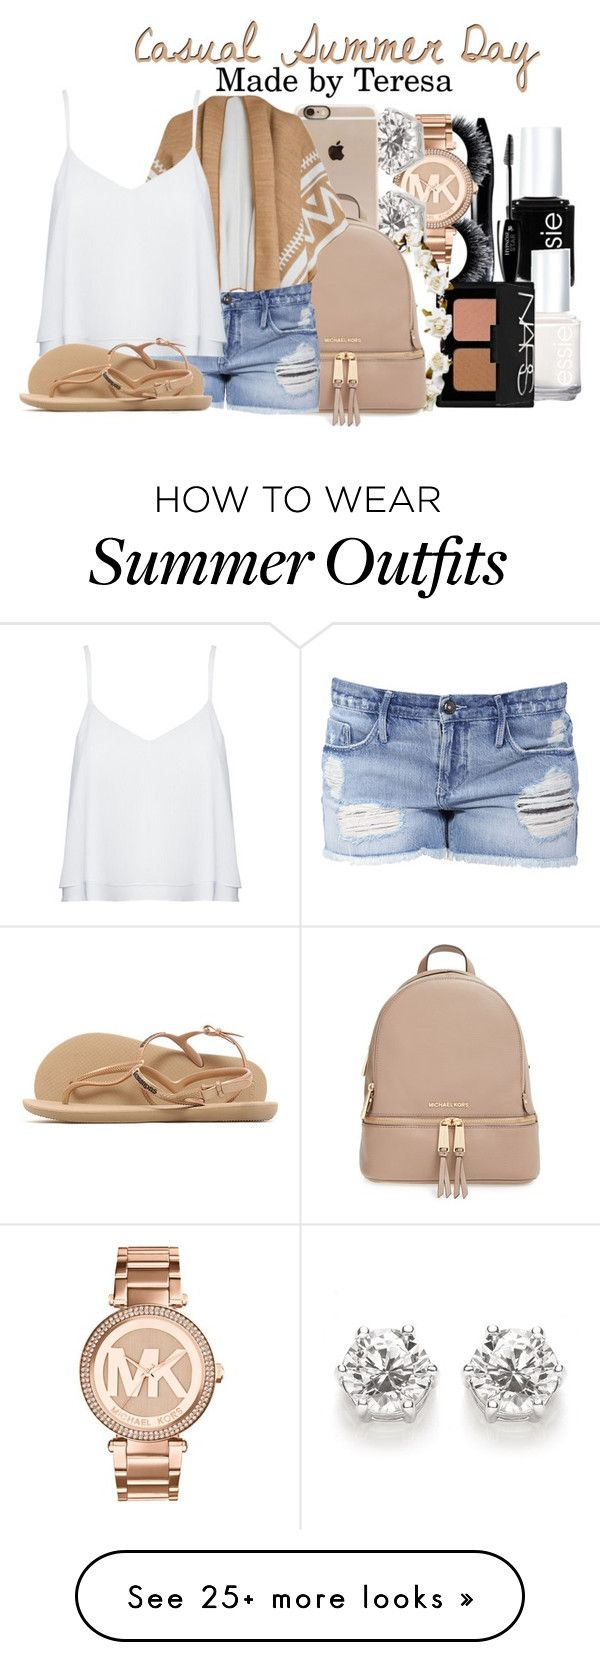 """""""casual summer day outfit //teresa"""" by classy-girls-xo on Polyvore featuring Essie, Lancôme, NARS Cosmetics, Michael Kors, Incase, Cult Gaia, MICHAEL Michael Kors, Black Orchid, Alice + Olivia and Havaianas"""